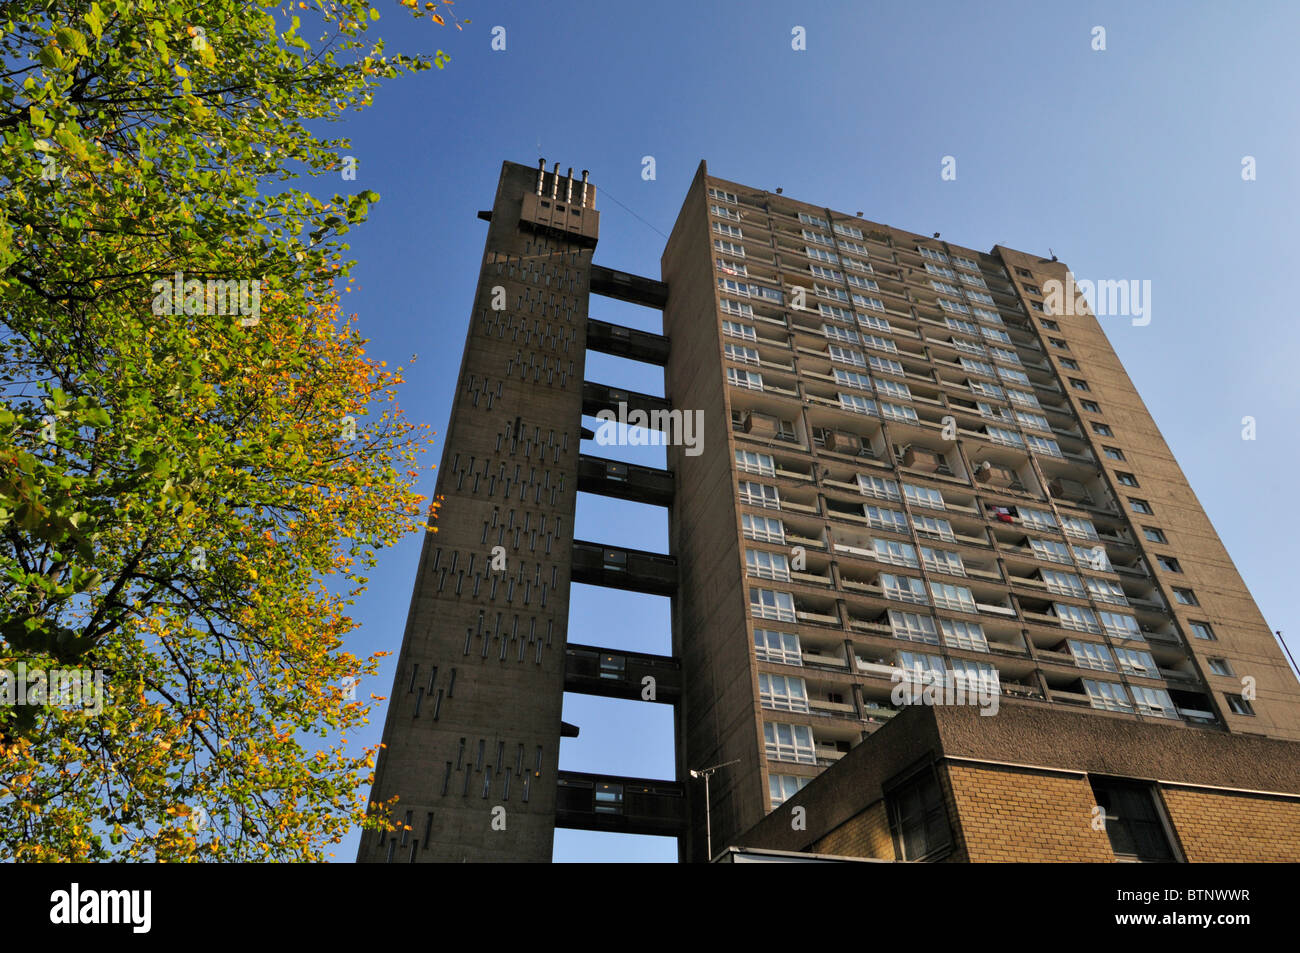 Balfron Tower, Brownfield für den sozialen Wohnungsbau Immobilien, Pappel, Tower Hamlets, East London E14, Stockbild